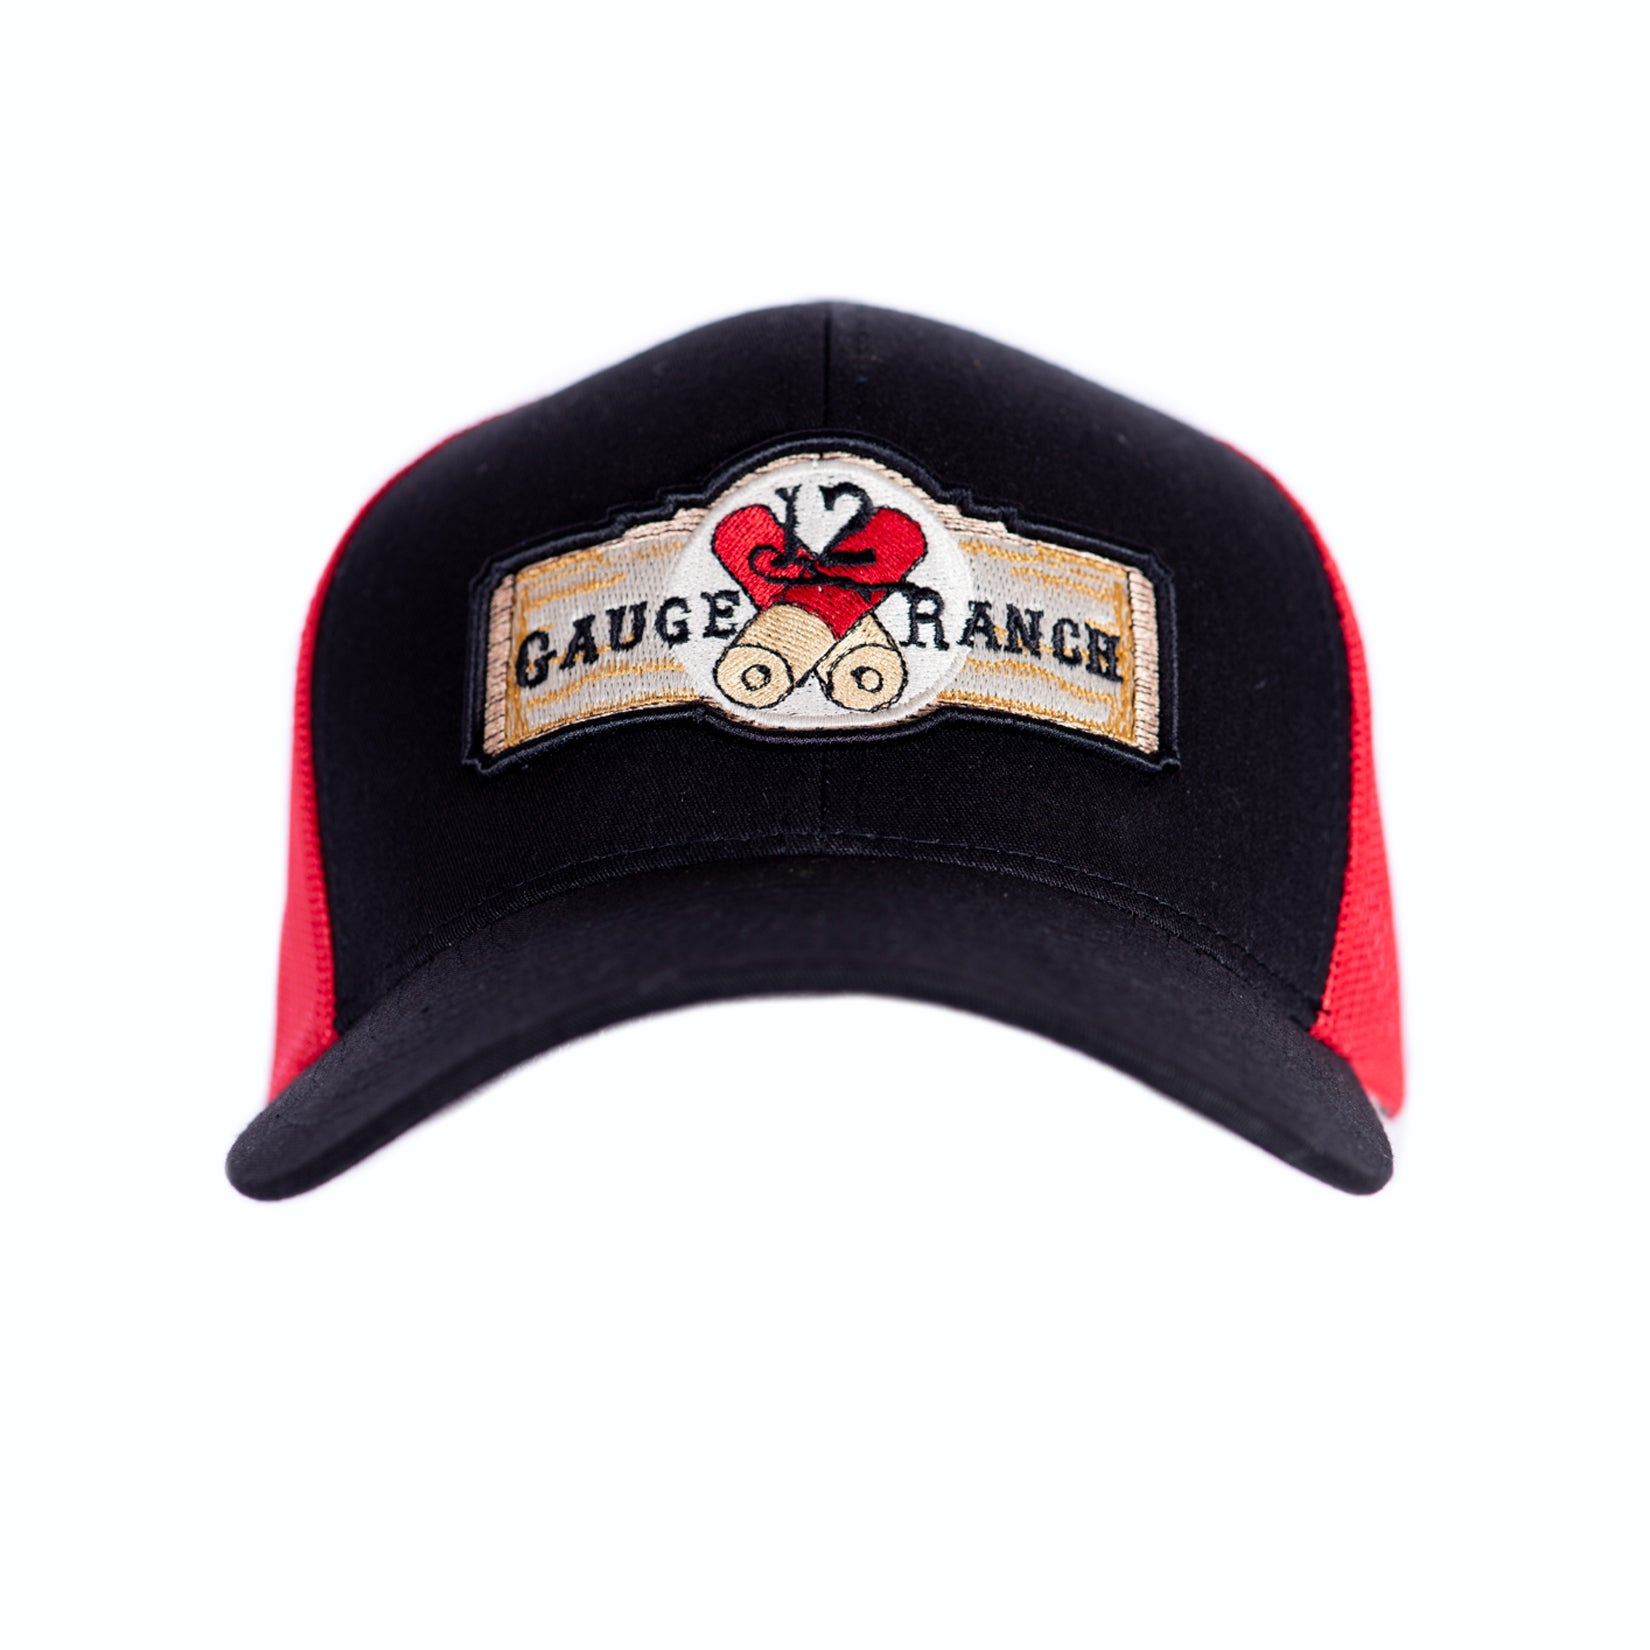 12 Gauge Ranch Baseball Hat Black and Red (BBH104RB)